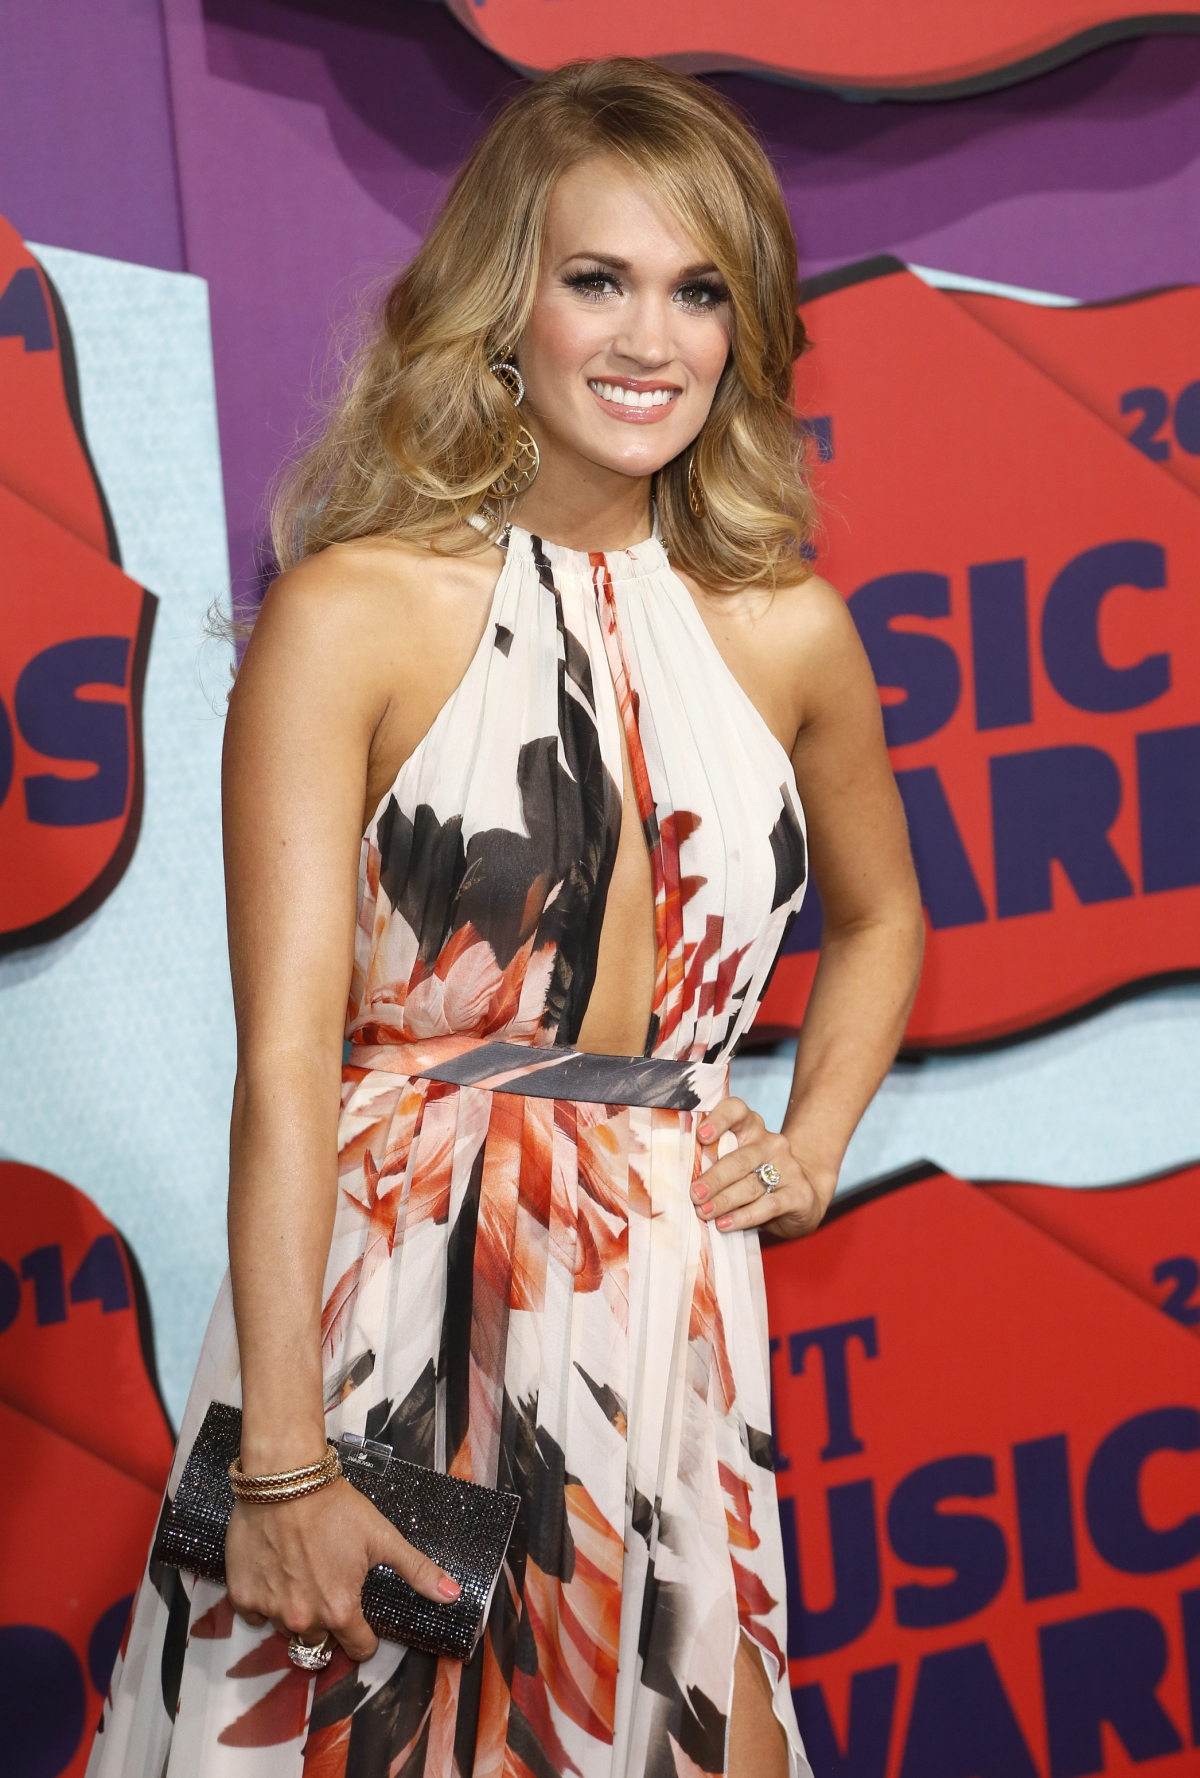 Carrie Underwood at the 2014 CMT Music Awards in Nashville, Tennessee.